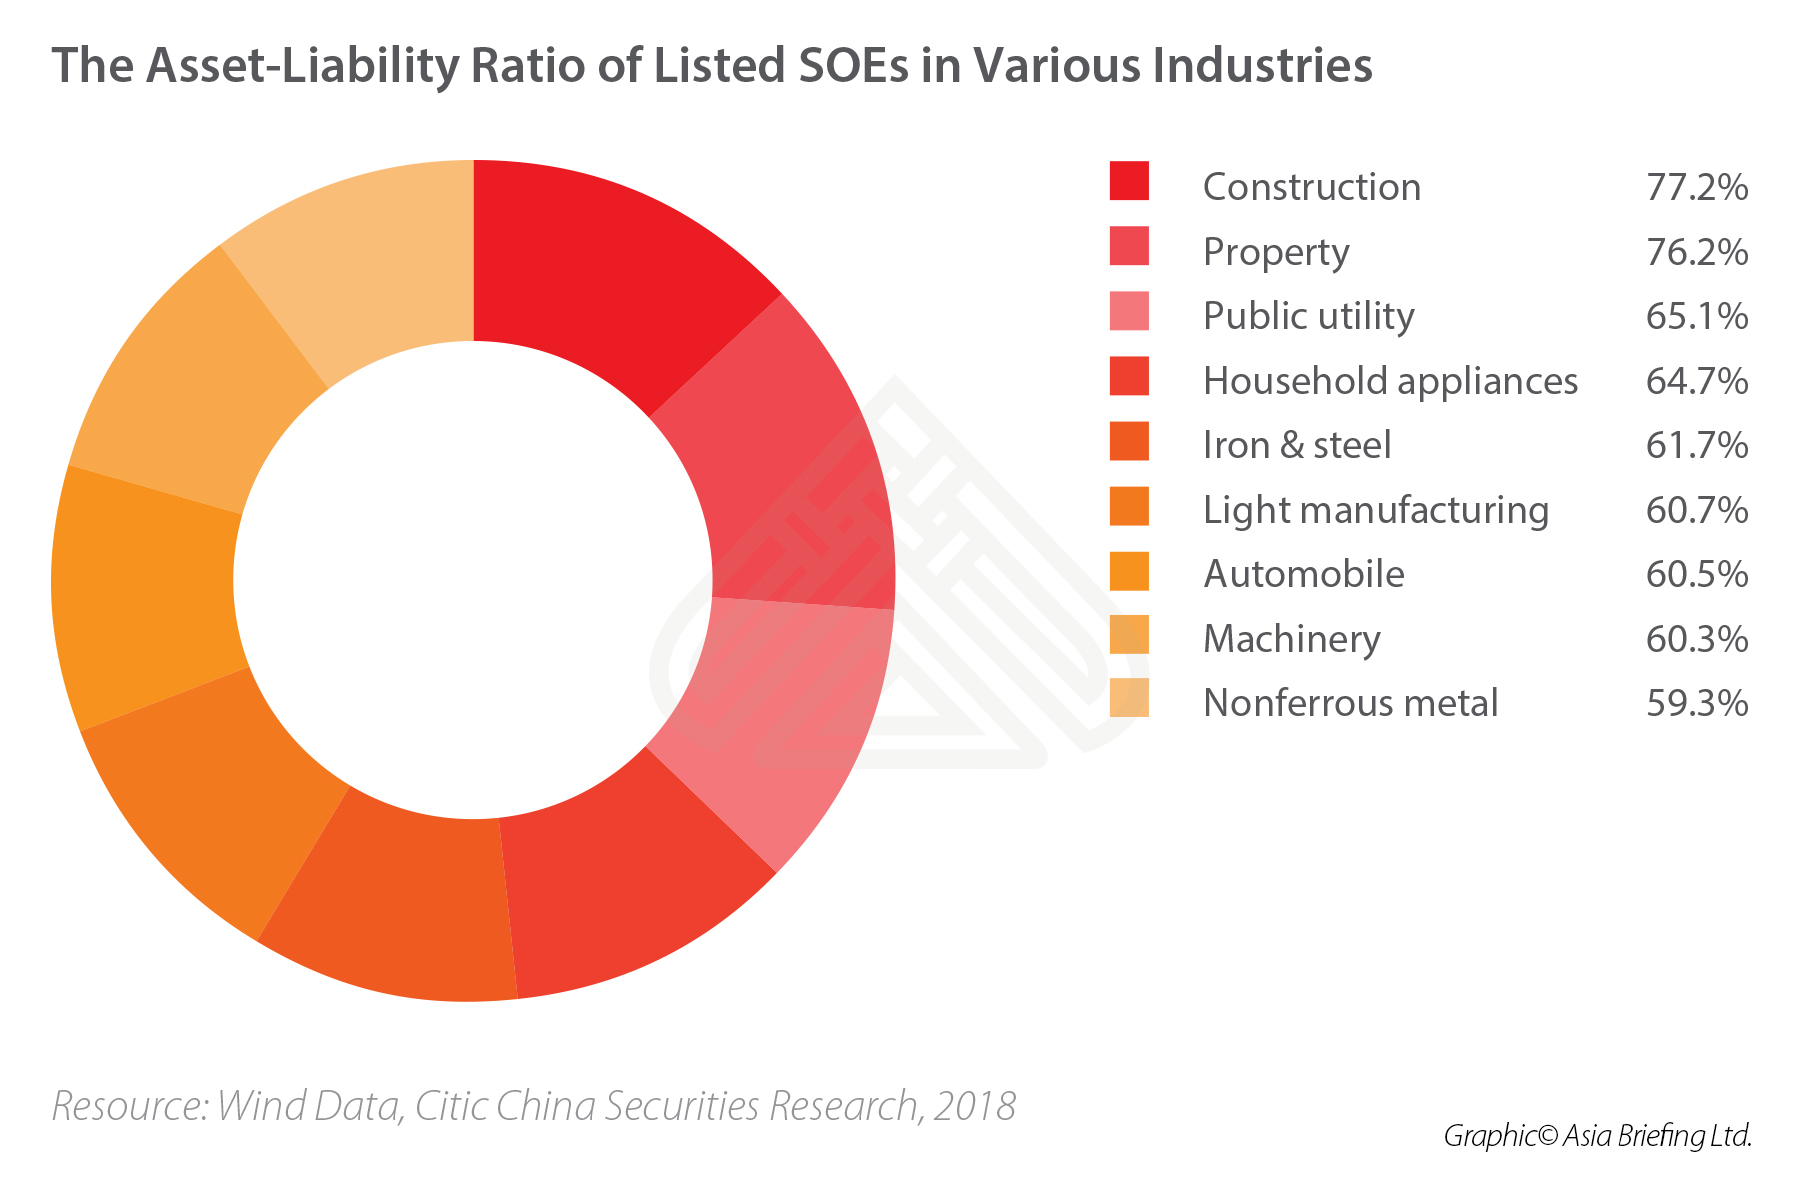 china-listed-SOEs-asset-liability-ratio